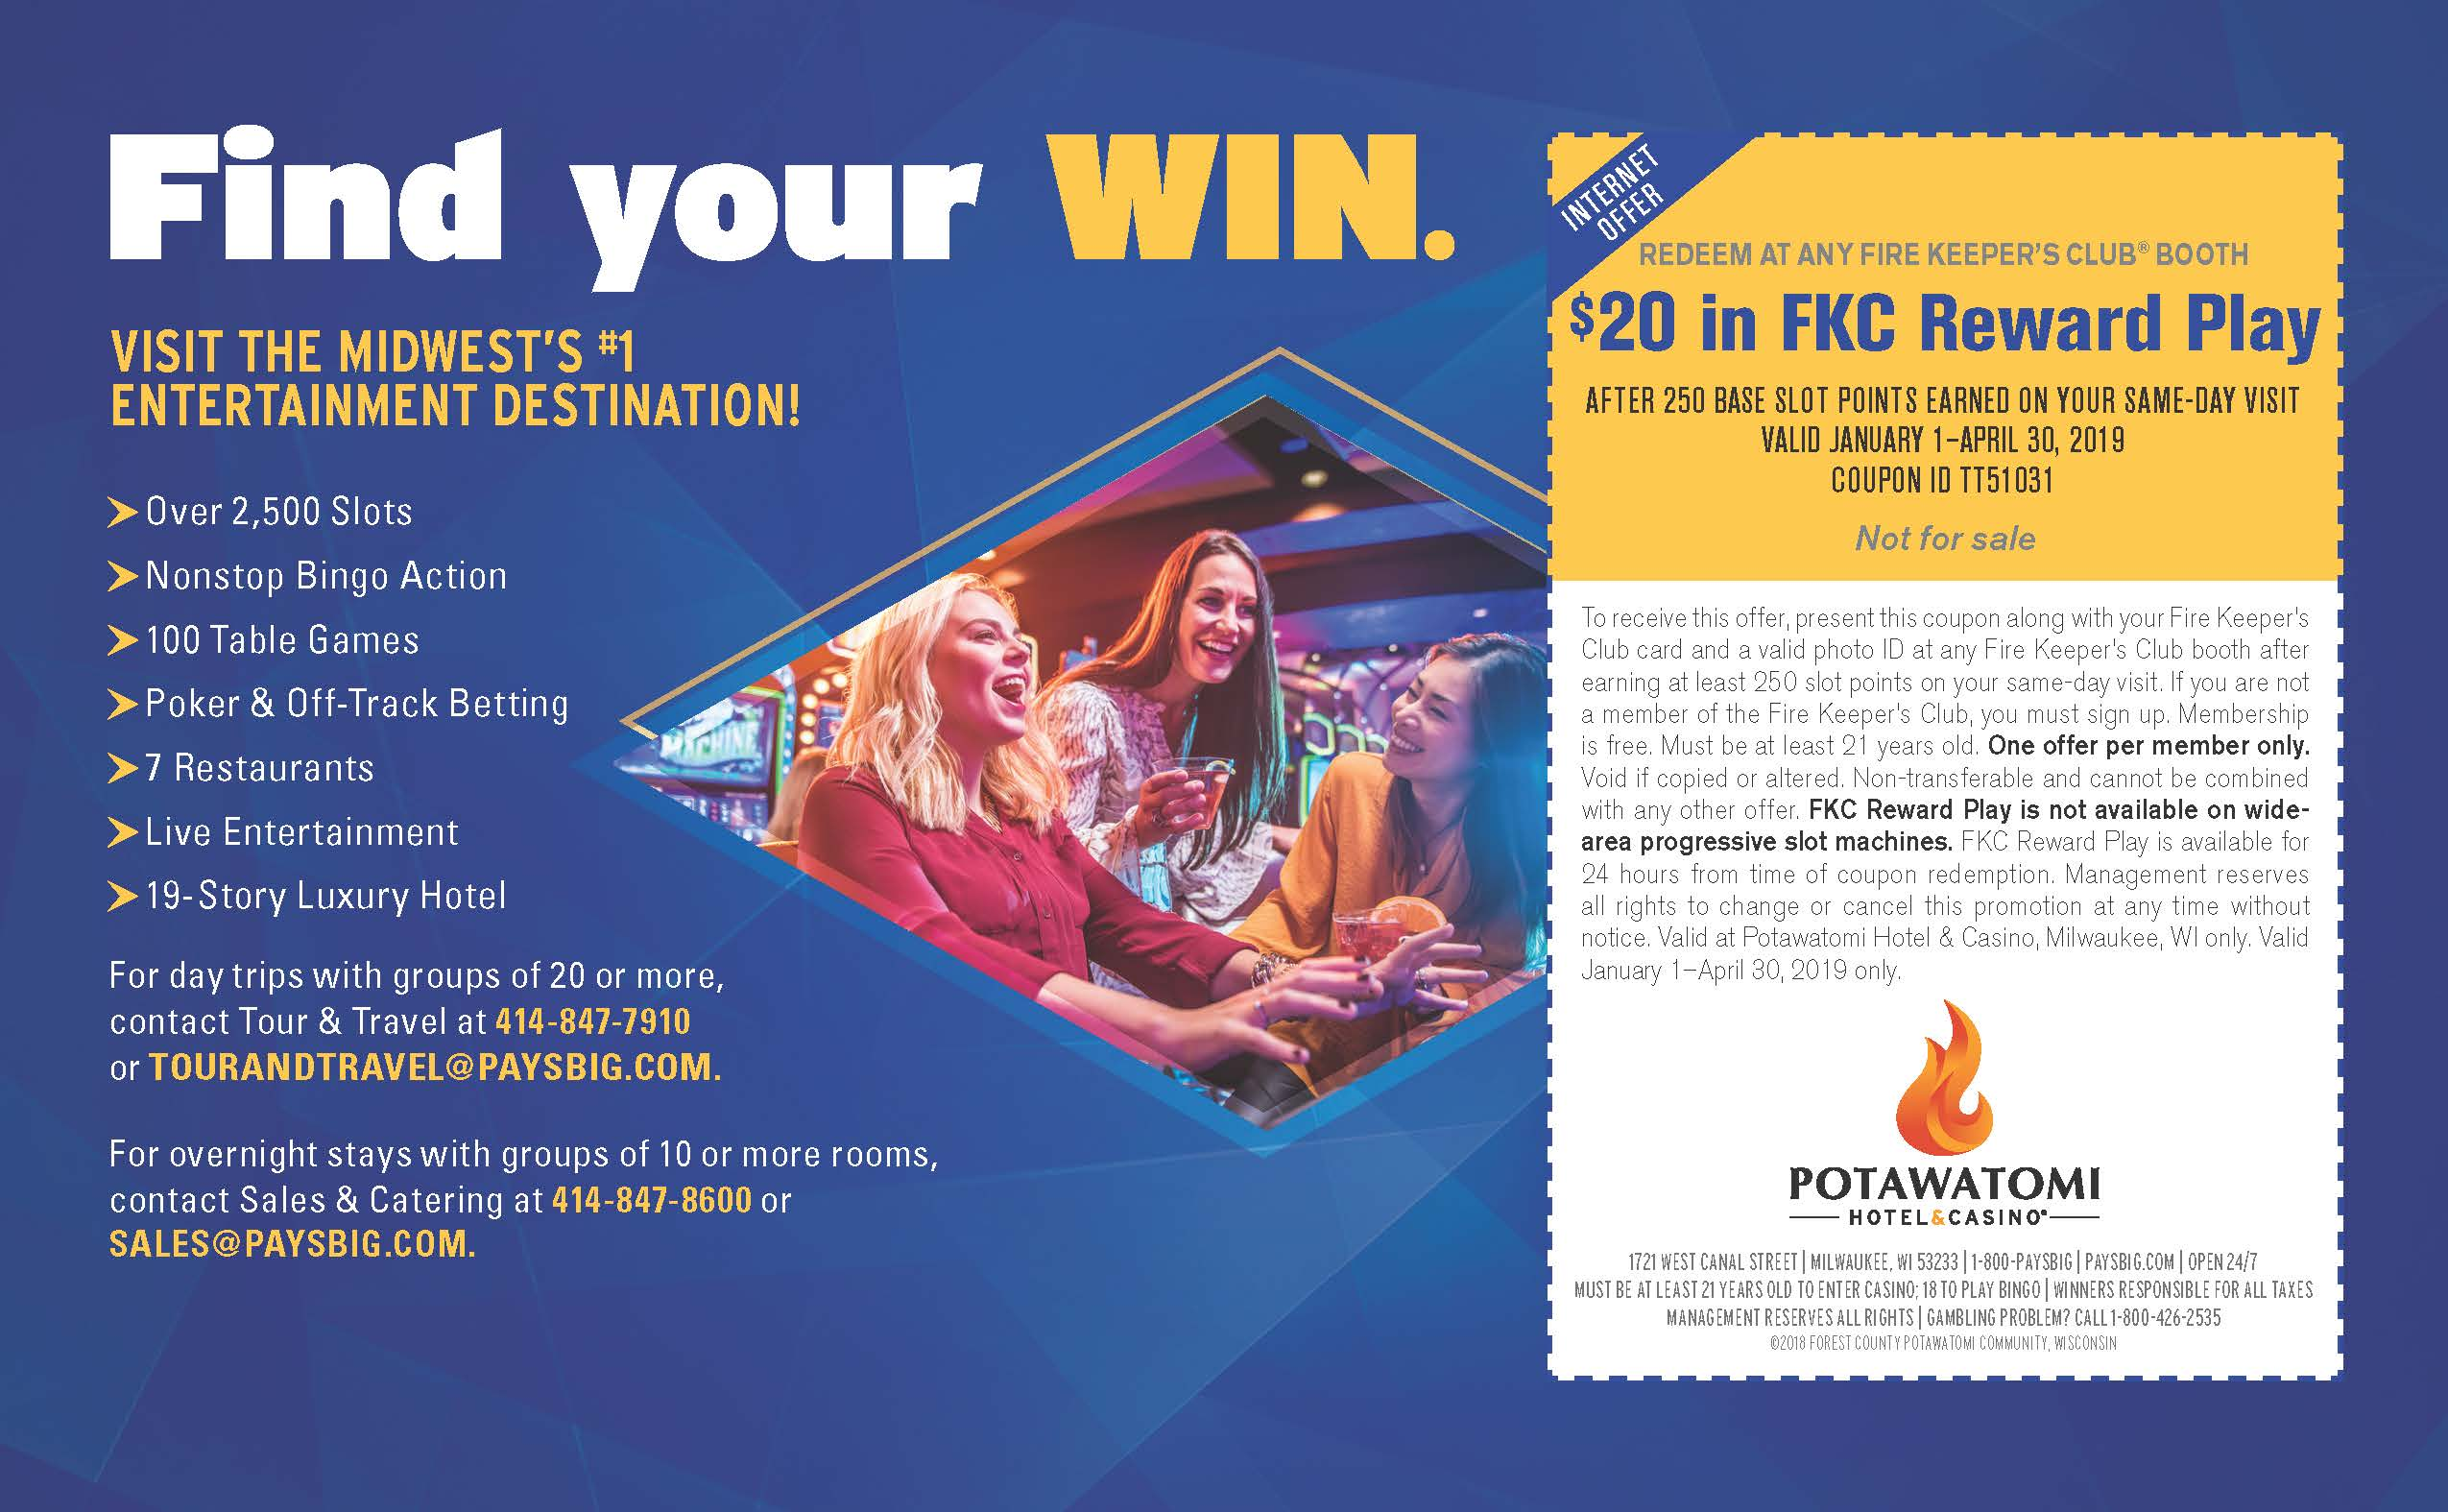 $20 in Fire Keepers Club Reward Play at Potawatomi Hotel & Casino (1/1/19 - 4/30/19)